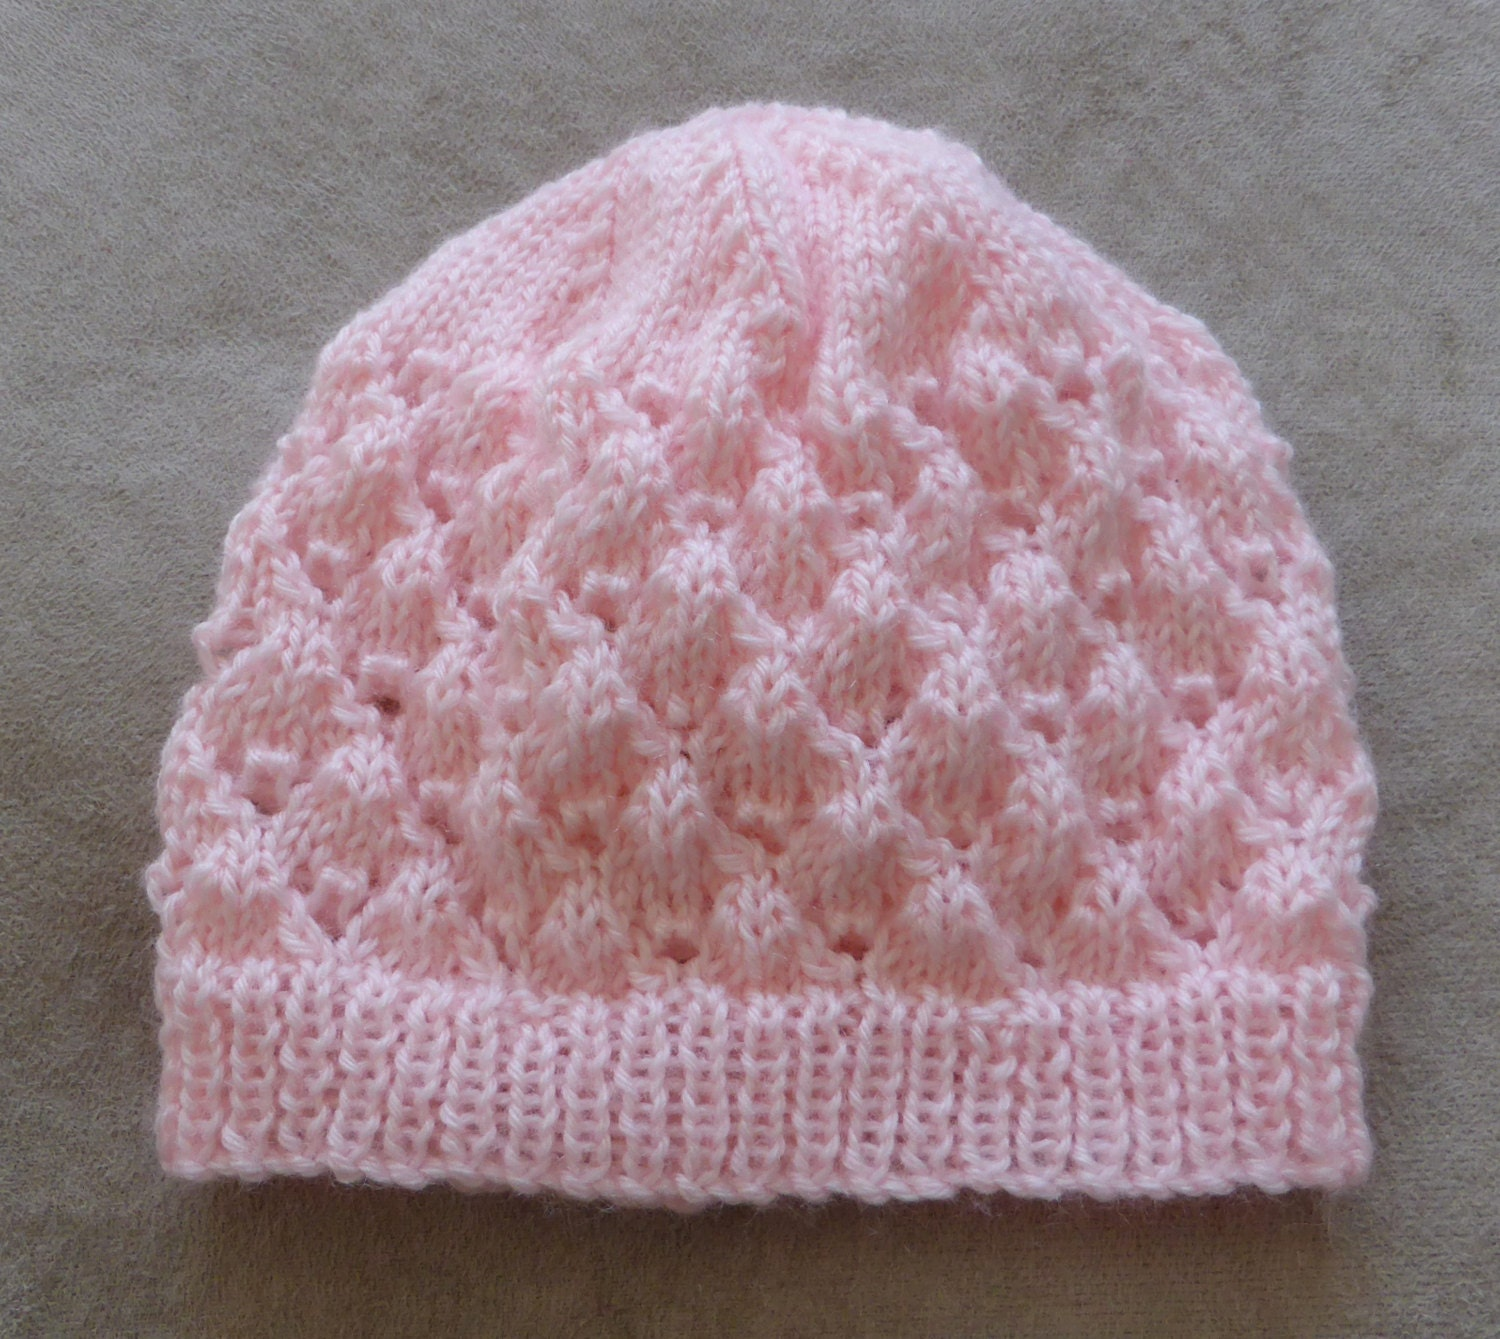 Knitting Pattern Baby Beanie 8 Ply : Babies 4ply lace Beanie PDF knitting pattern Molly